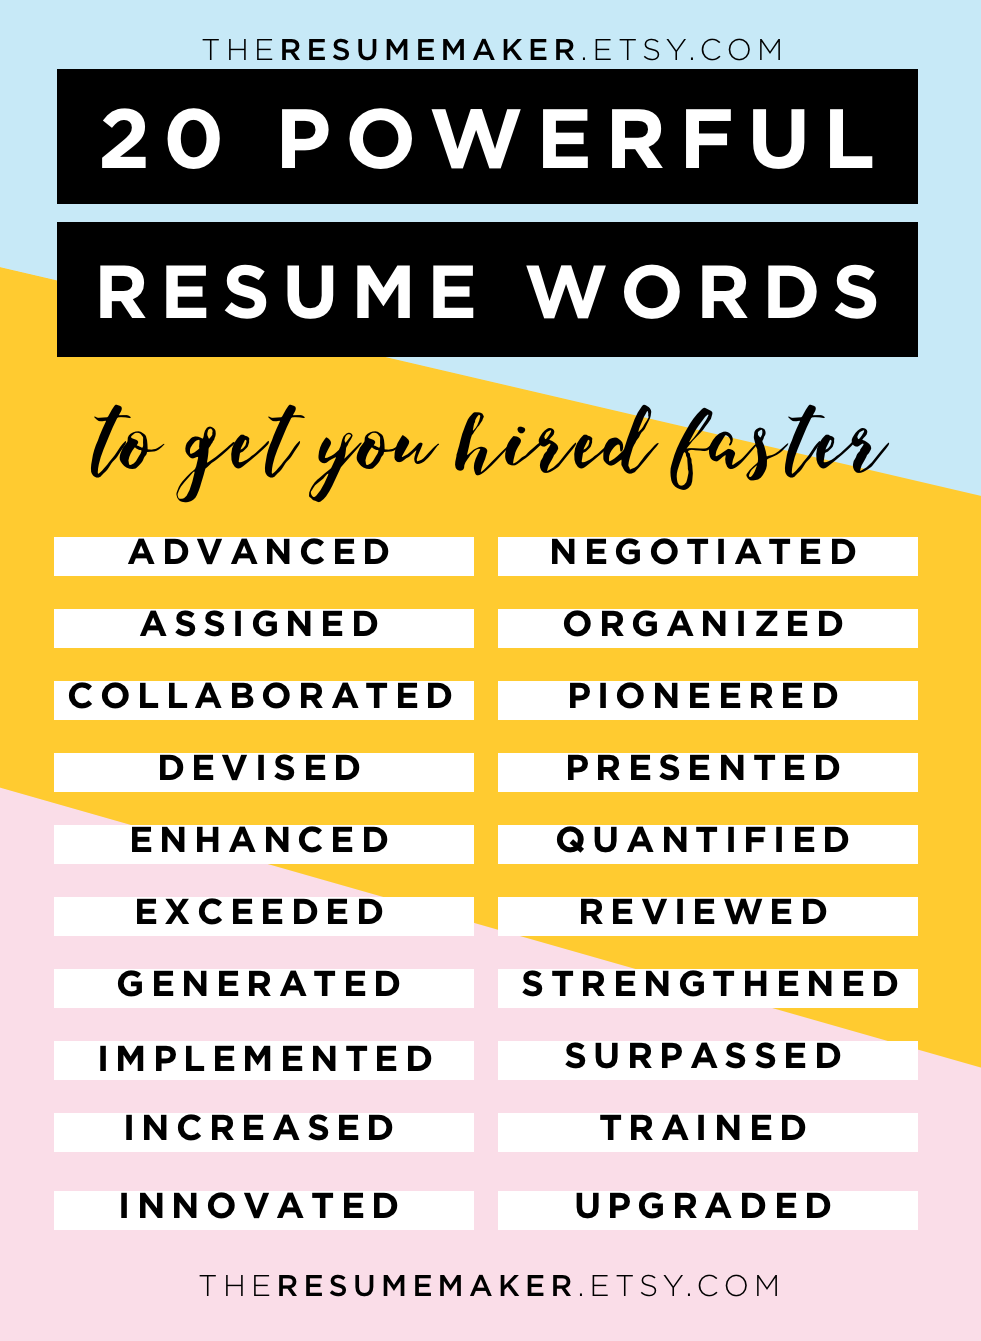 resume Resume Job Description Words pin by jessica buchanan on career resources pinterest resume template tips what your should look like in 2017